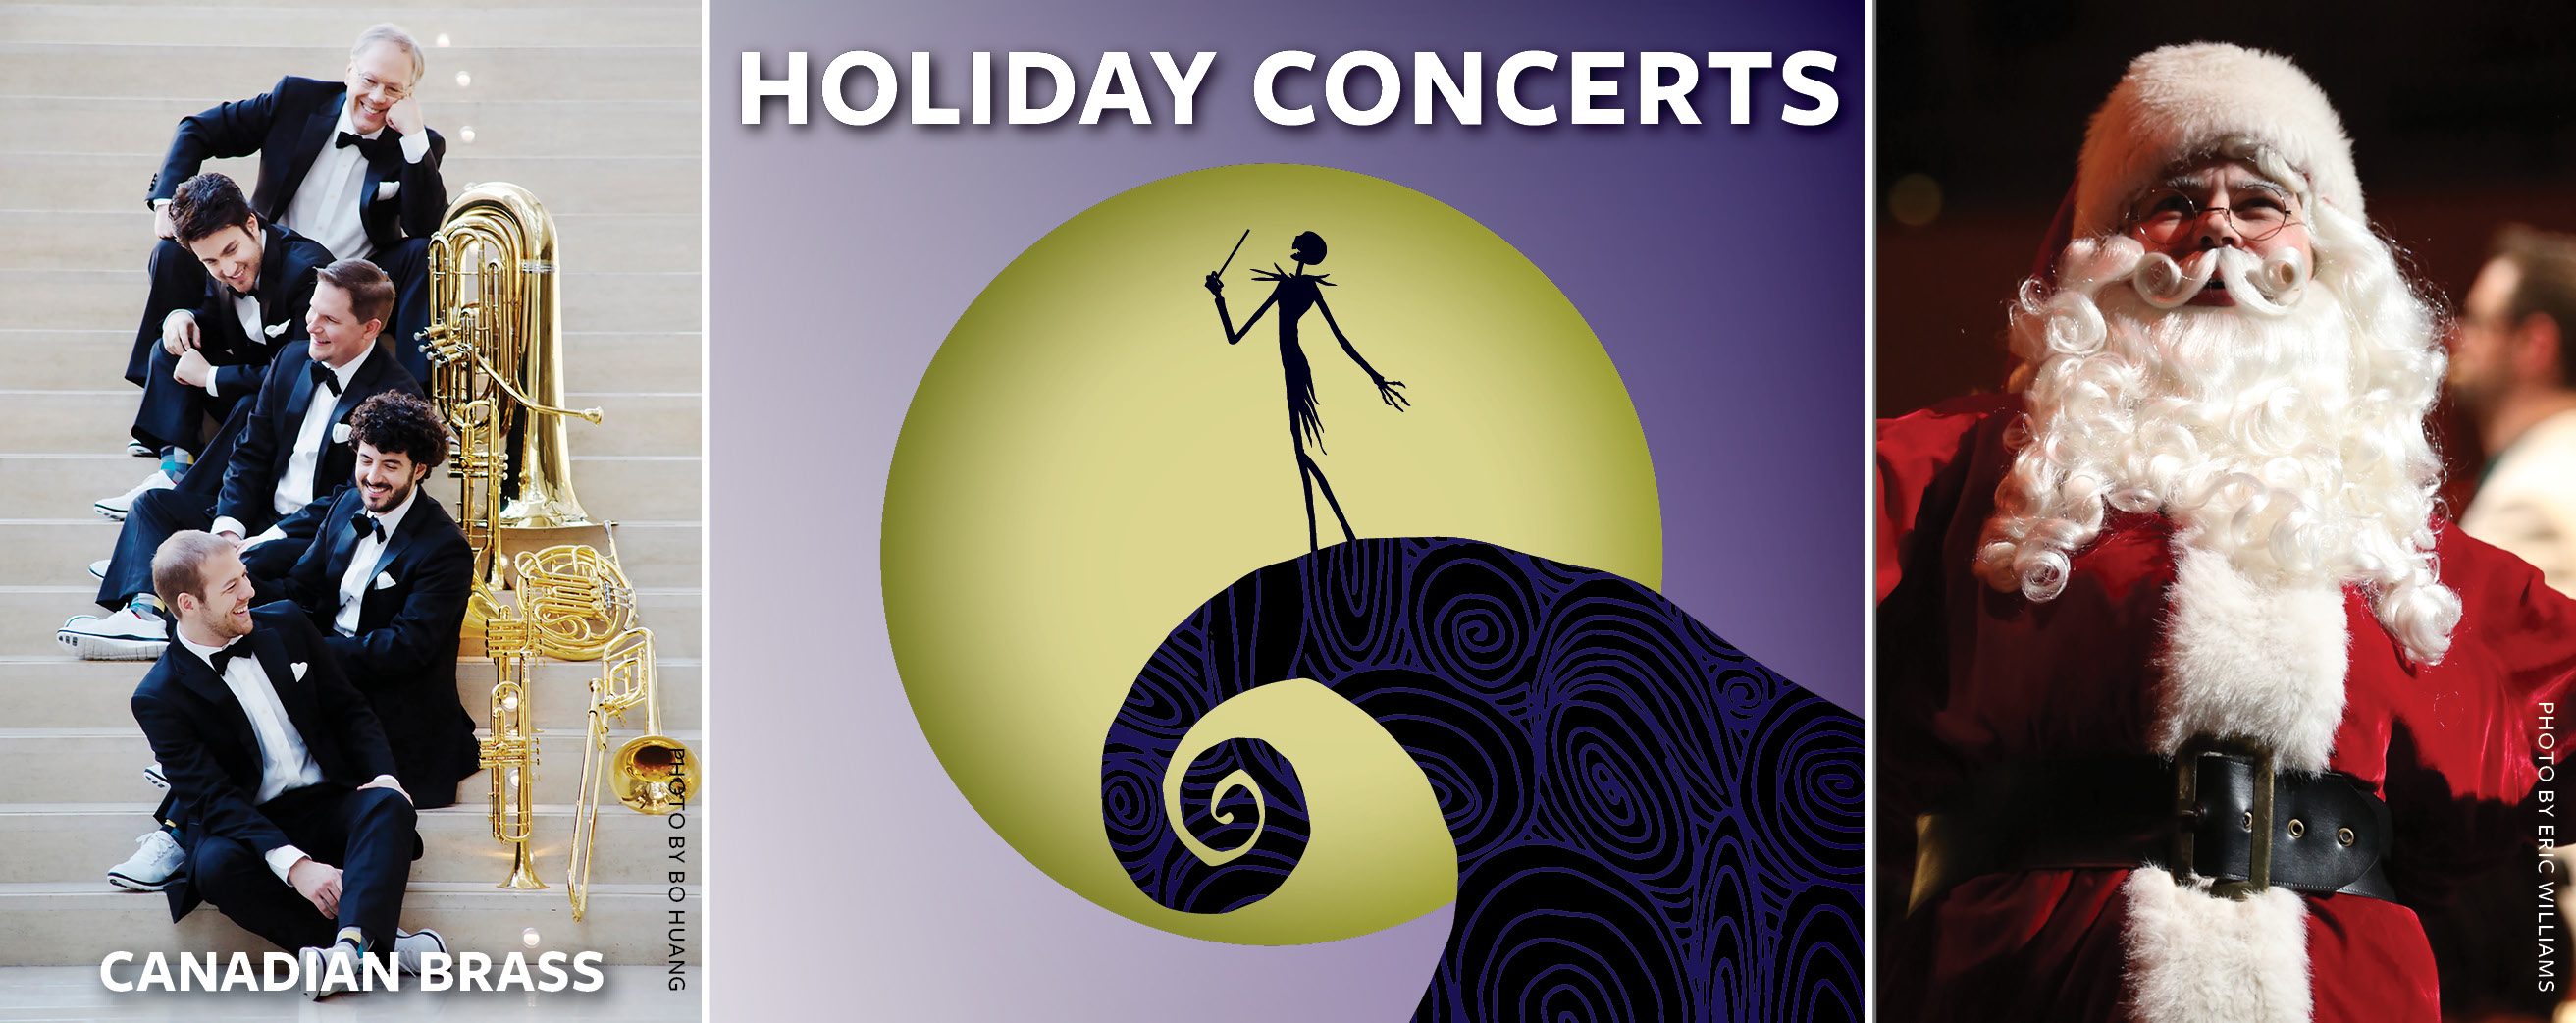 holiday concerts promotional banner